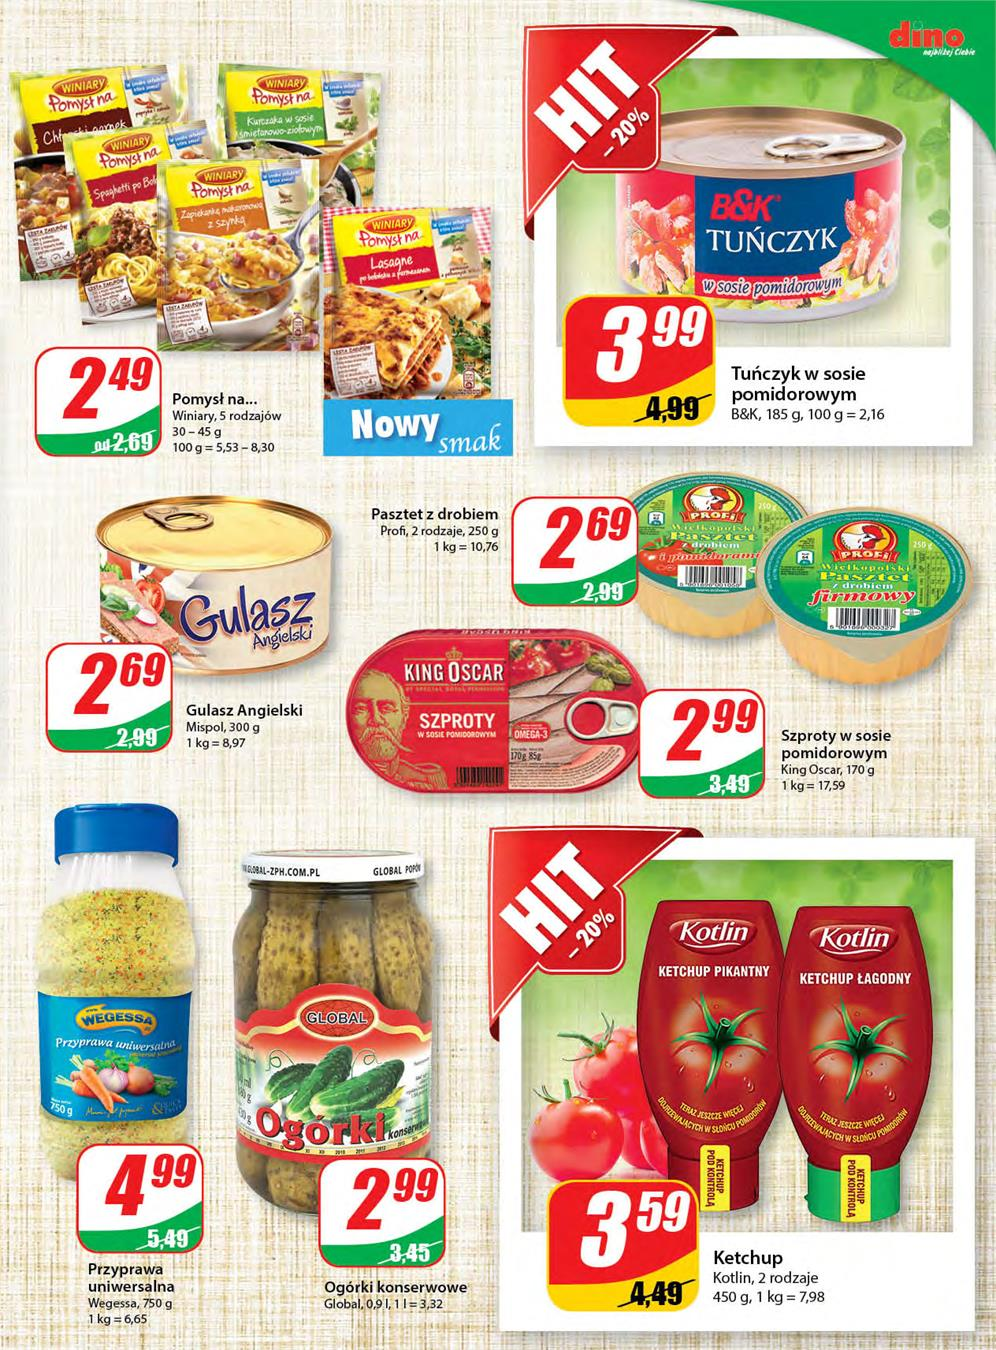 Gazetka DINO POLSKA S.A. nr 7 od 2015-06-10 do 2015-06-16